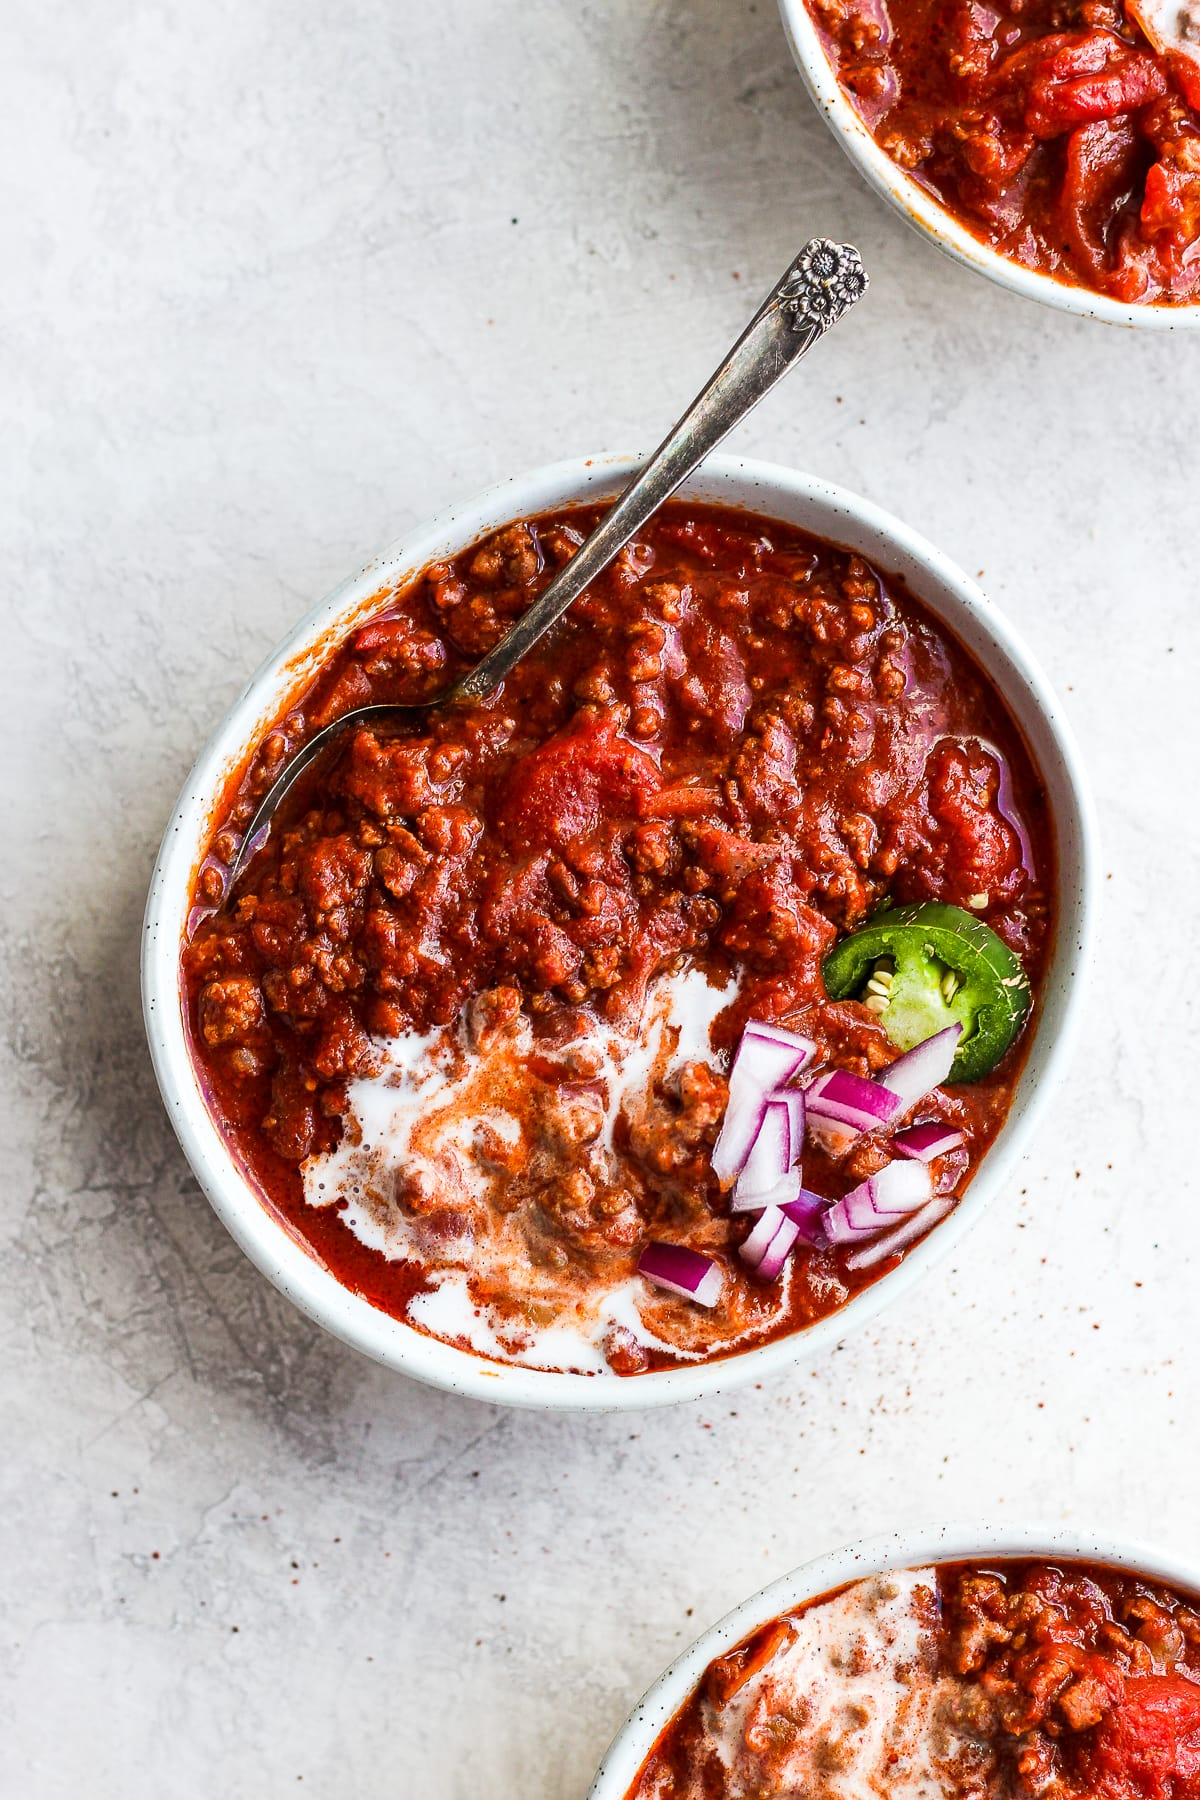 The Absolute Best Classic Slow Cooker Paleo Chili - the simple classic, but made paleo and Whole30! So simple an turns out perfectly EVERY time! #whole30 #paleo #glutenfree #dairyfree